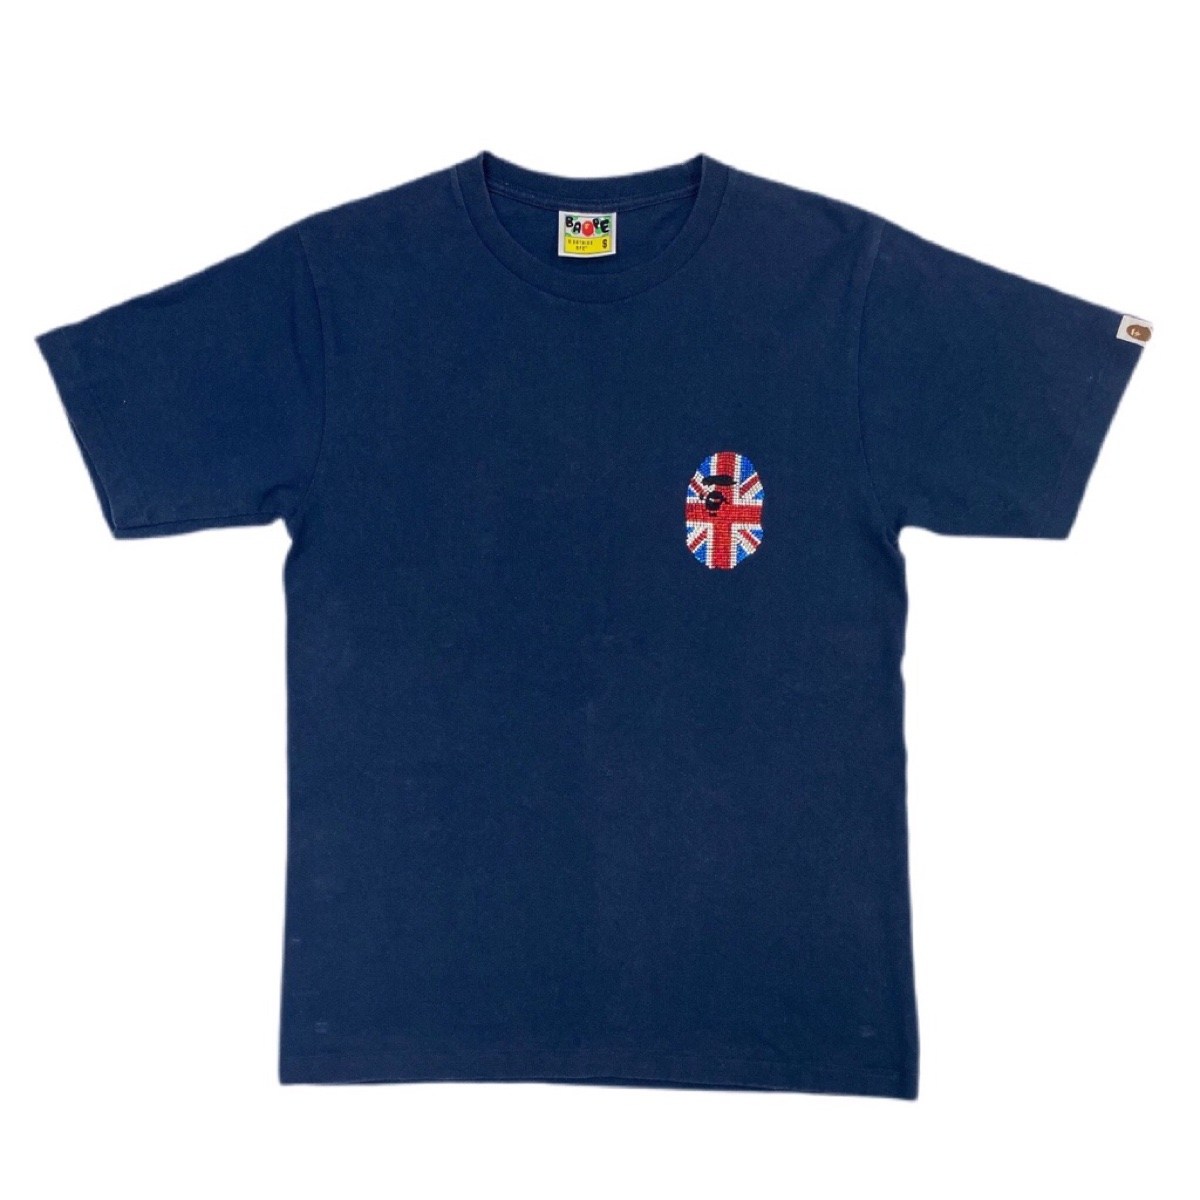 Bape Great Britain Swarovski tee